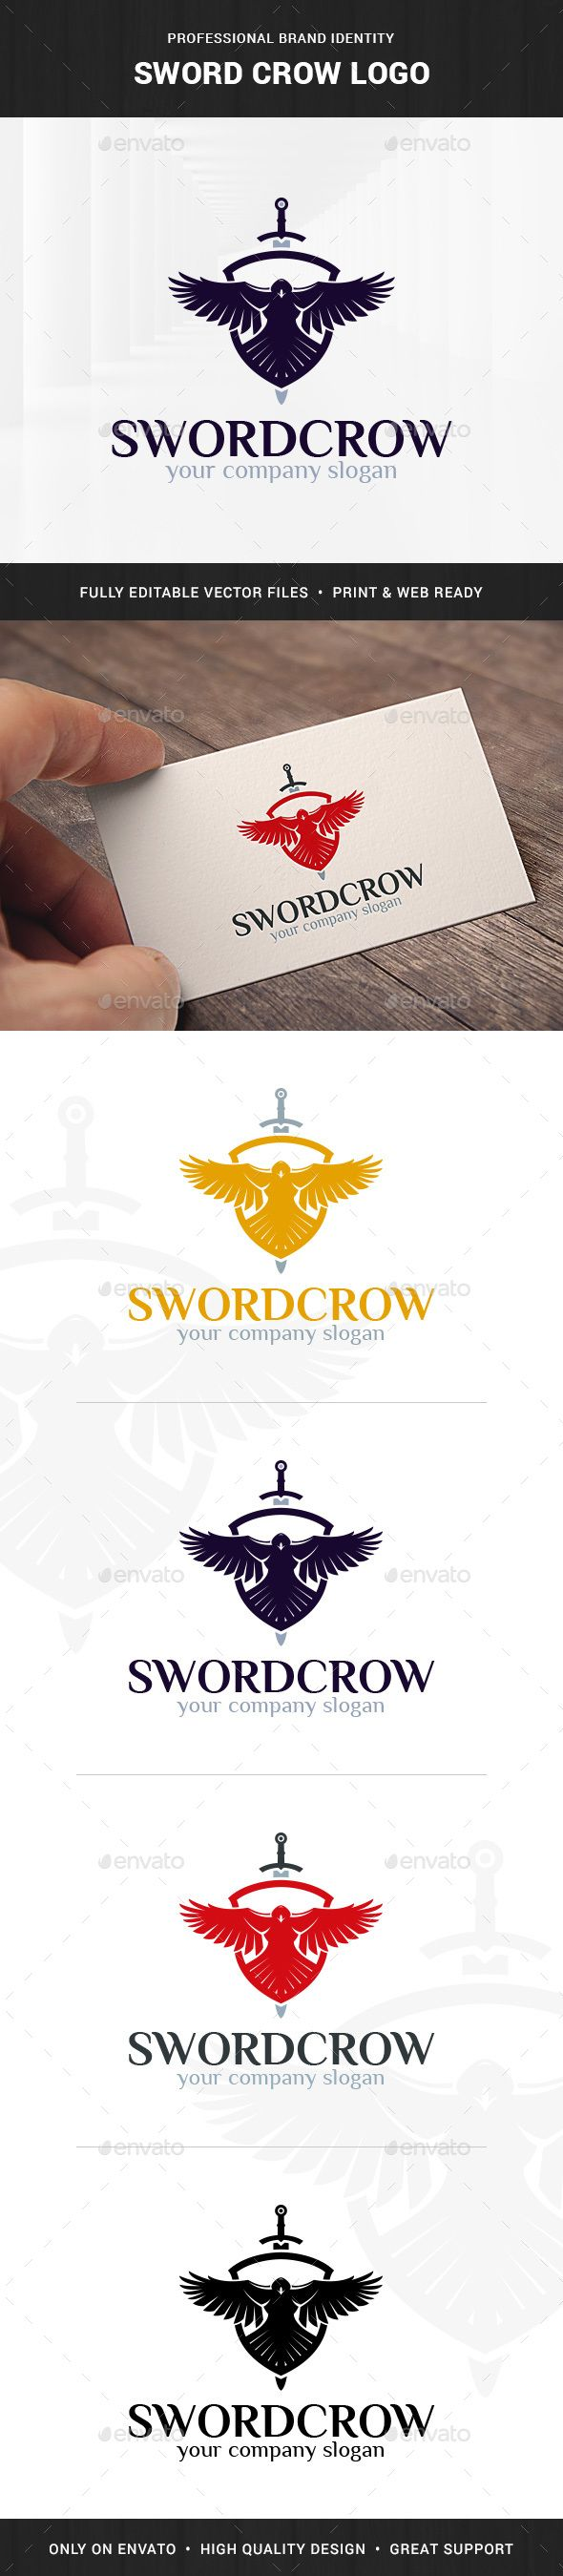 Sword Crow Logo Template — Photoshop PSD #business #agency • Available here → https://graphicriver.net/item/sword-crow-logo-template/15933238?ref=pxcr